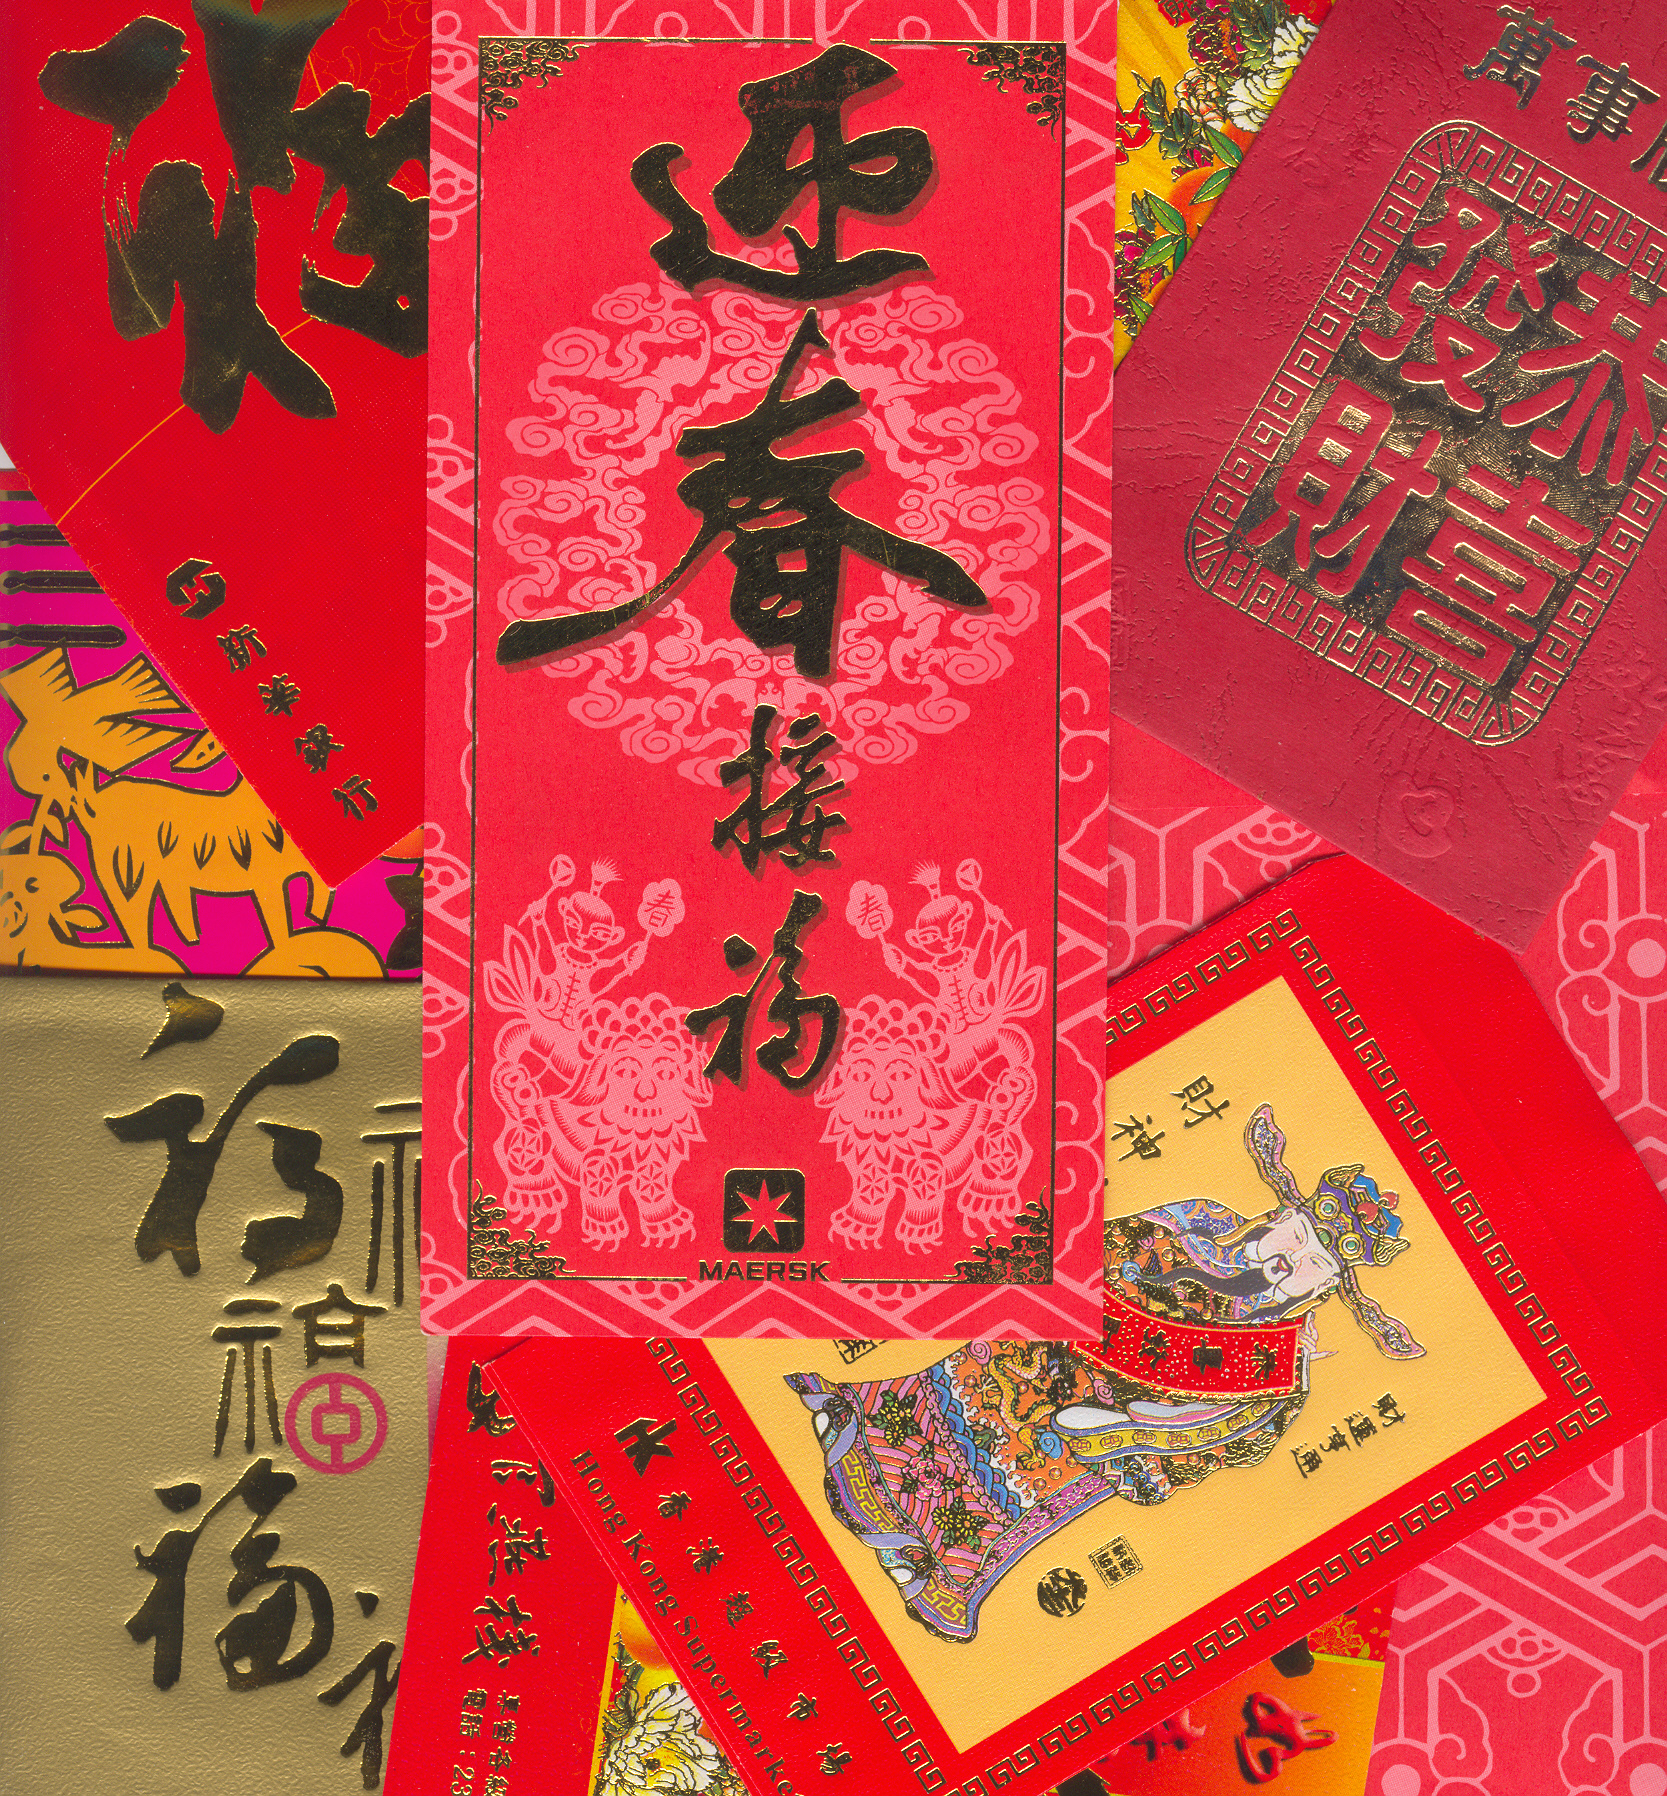 Red envelope - Wikipedia